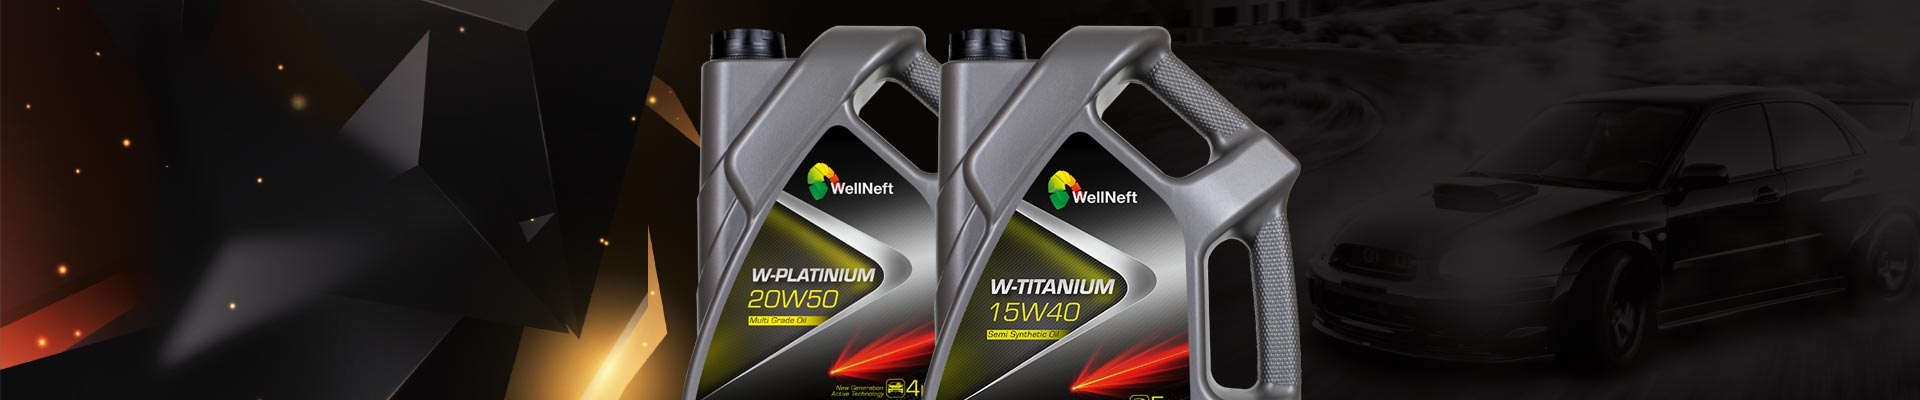 WELLNEFT LUBRICANTS